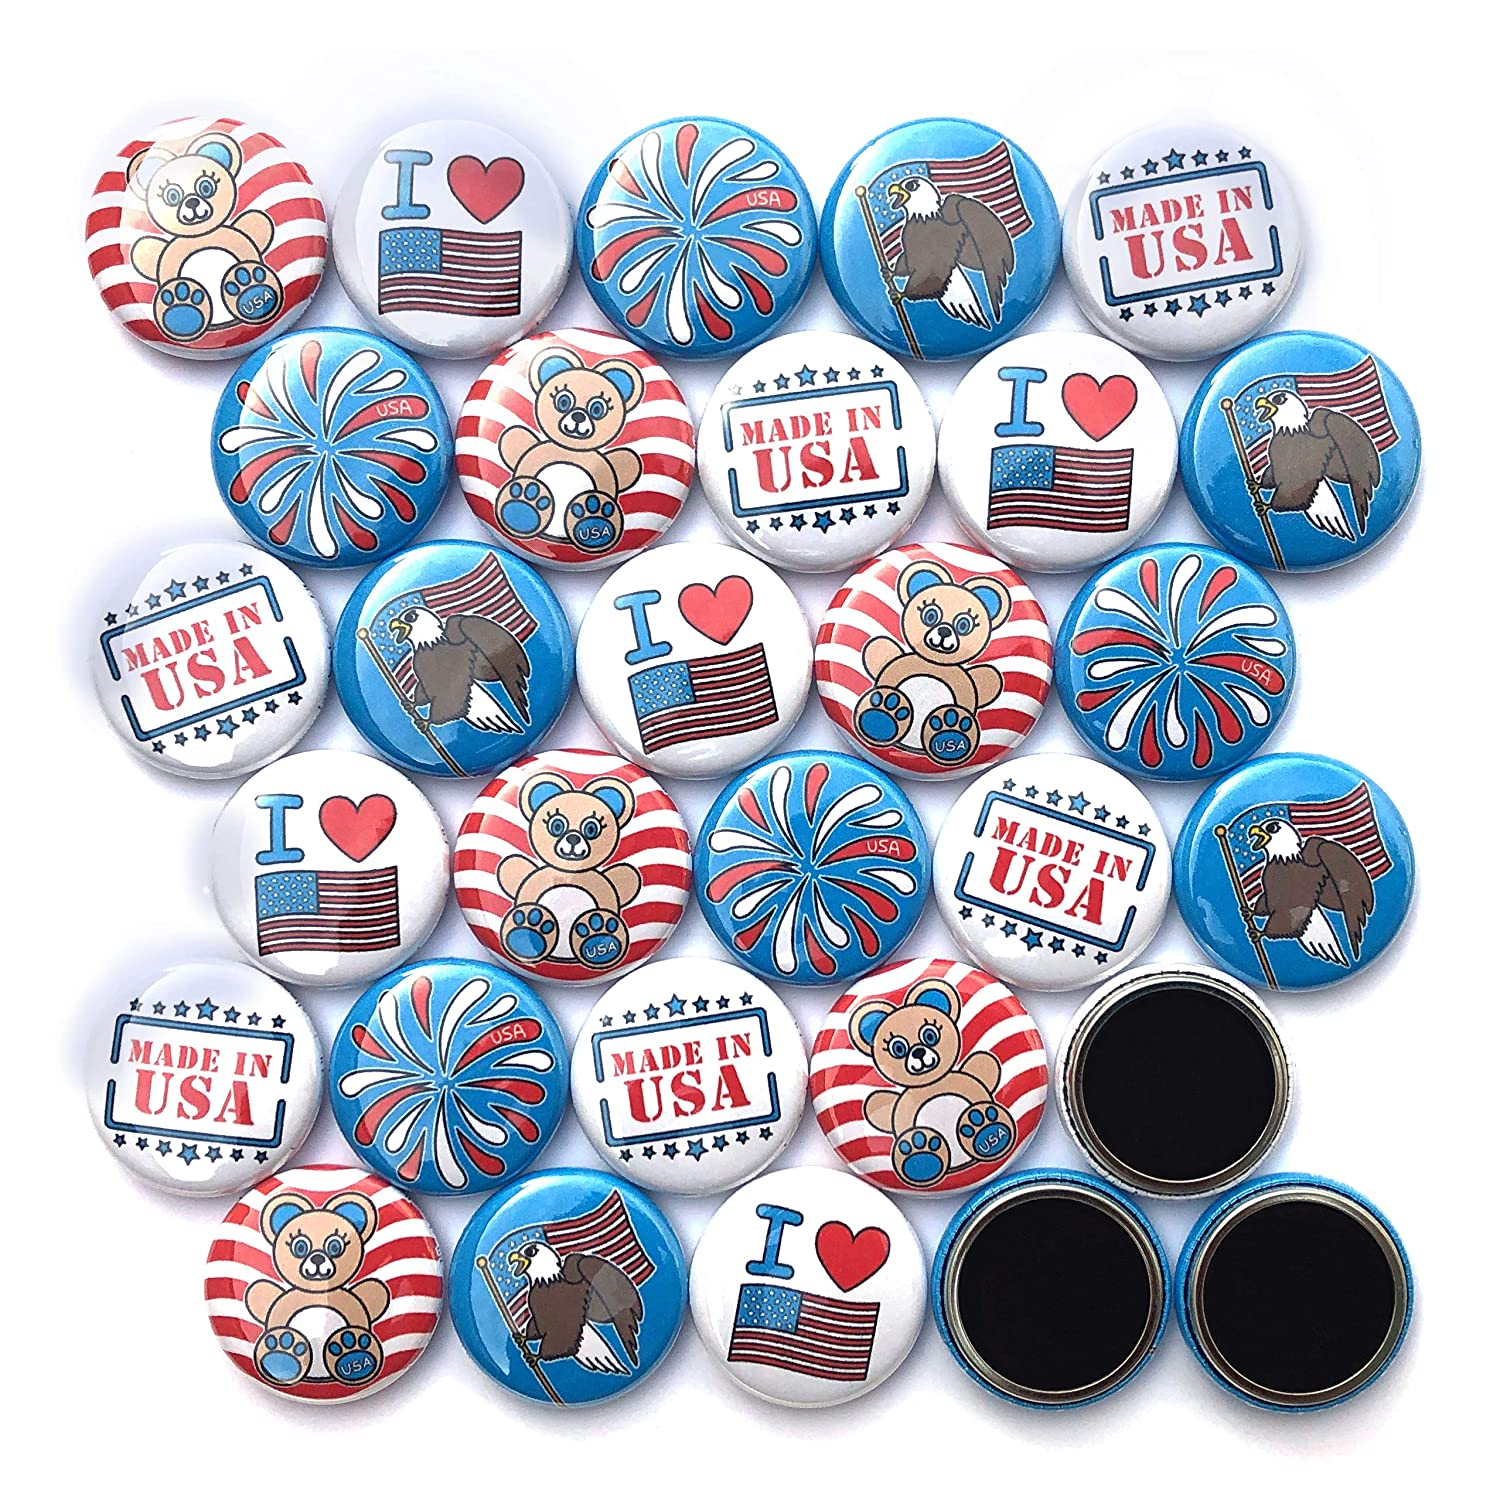 """Patriotic Mini Buttons - MADE IN USA. (1"""" Magnets, 30 Piece Set)"""